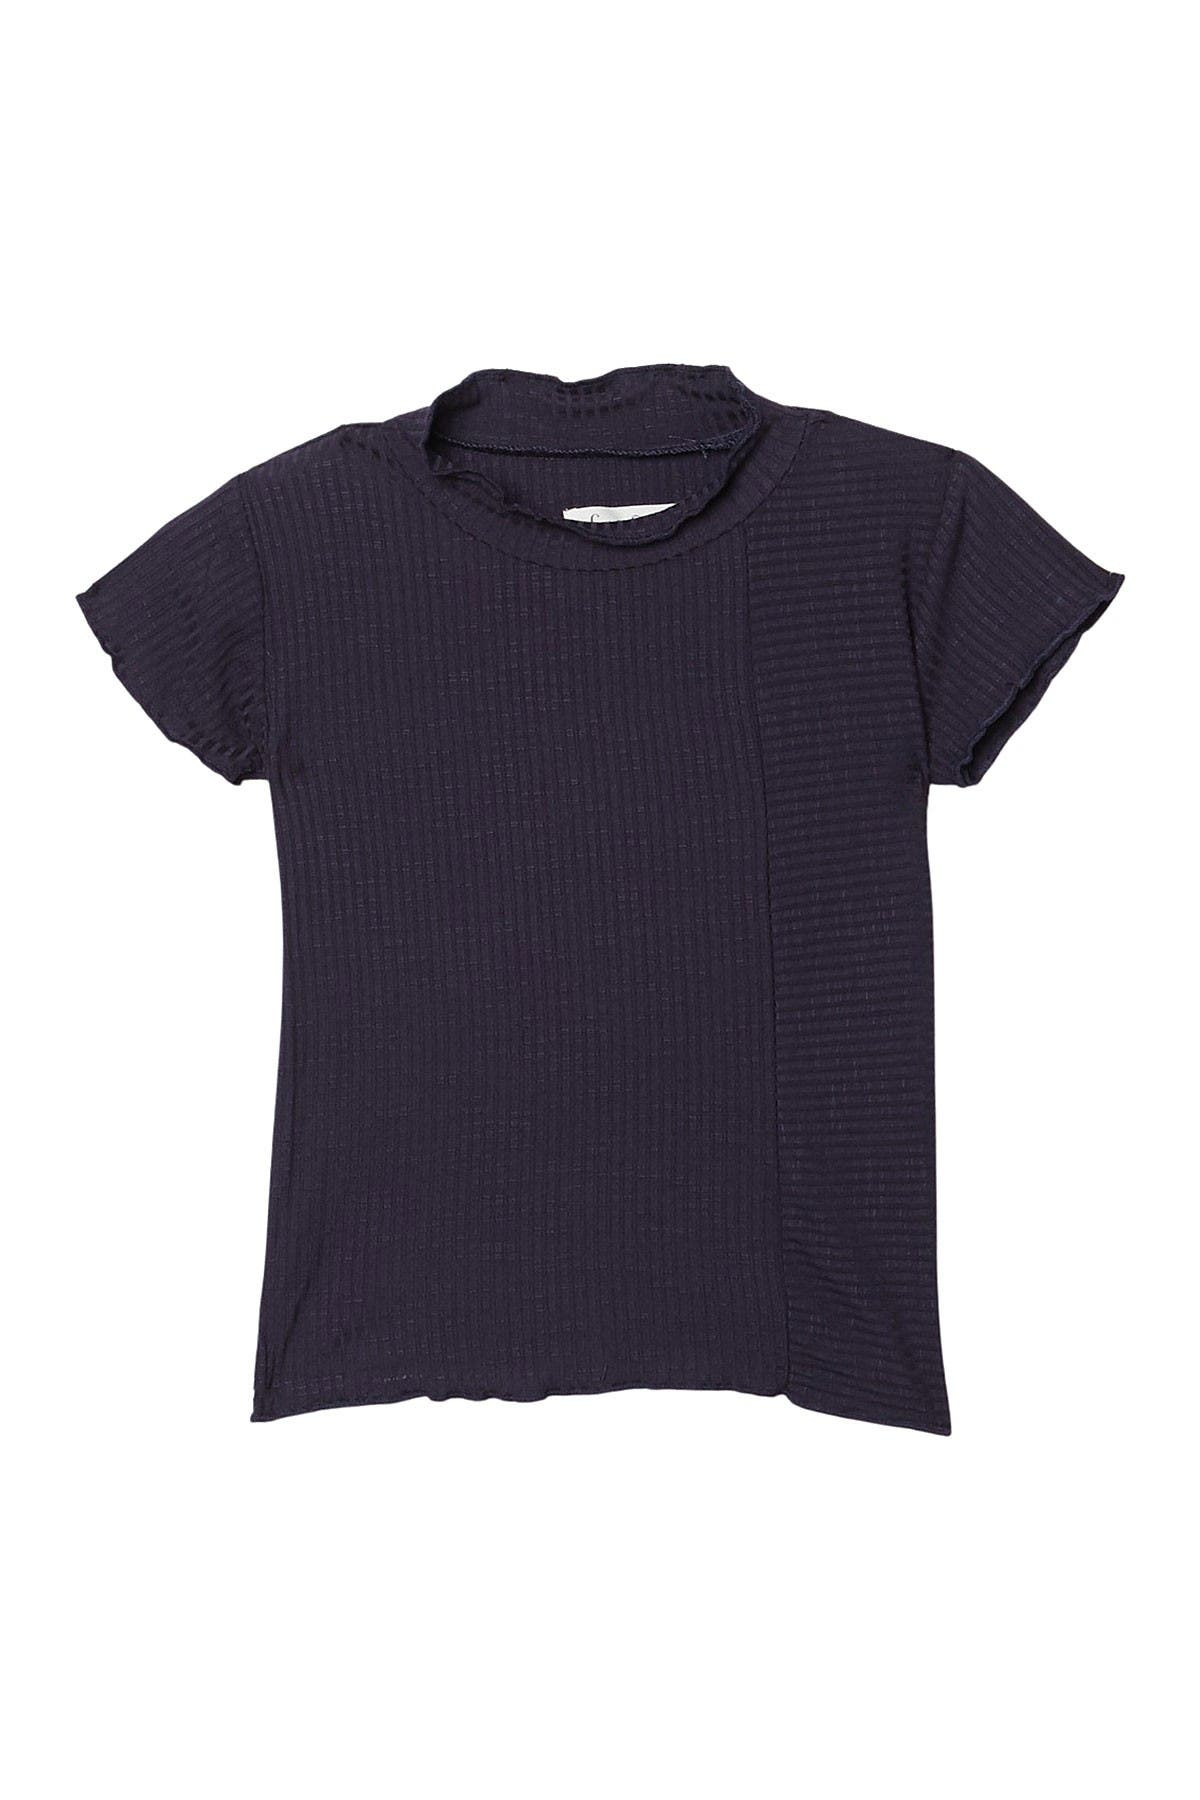 Image of Sovereign Code Frannie Mock Neck Rib Knit Top